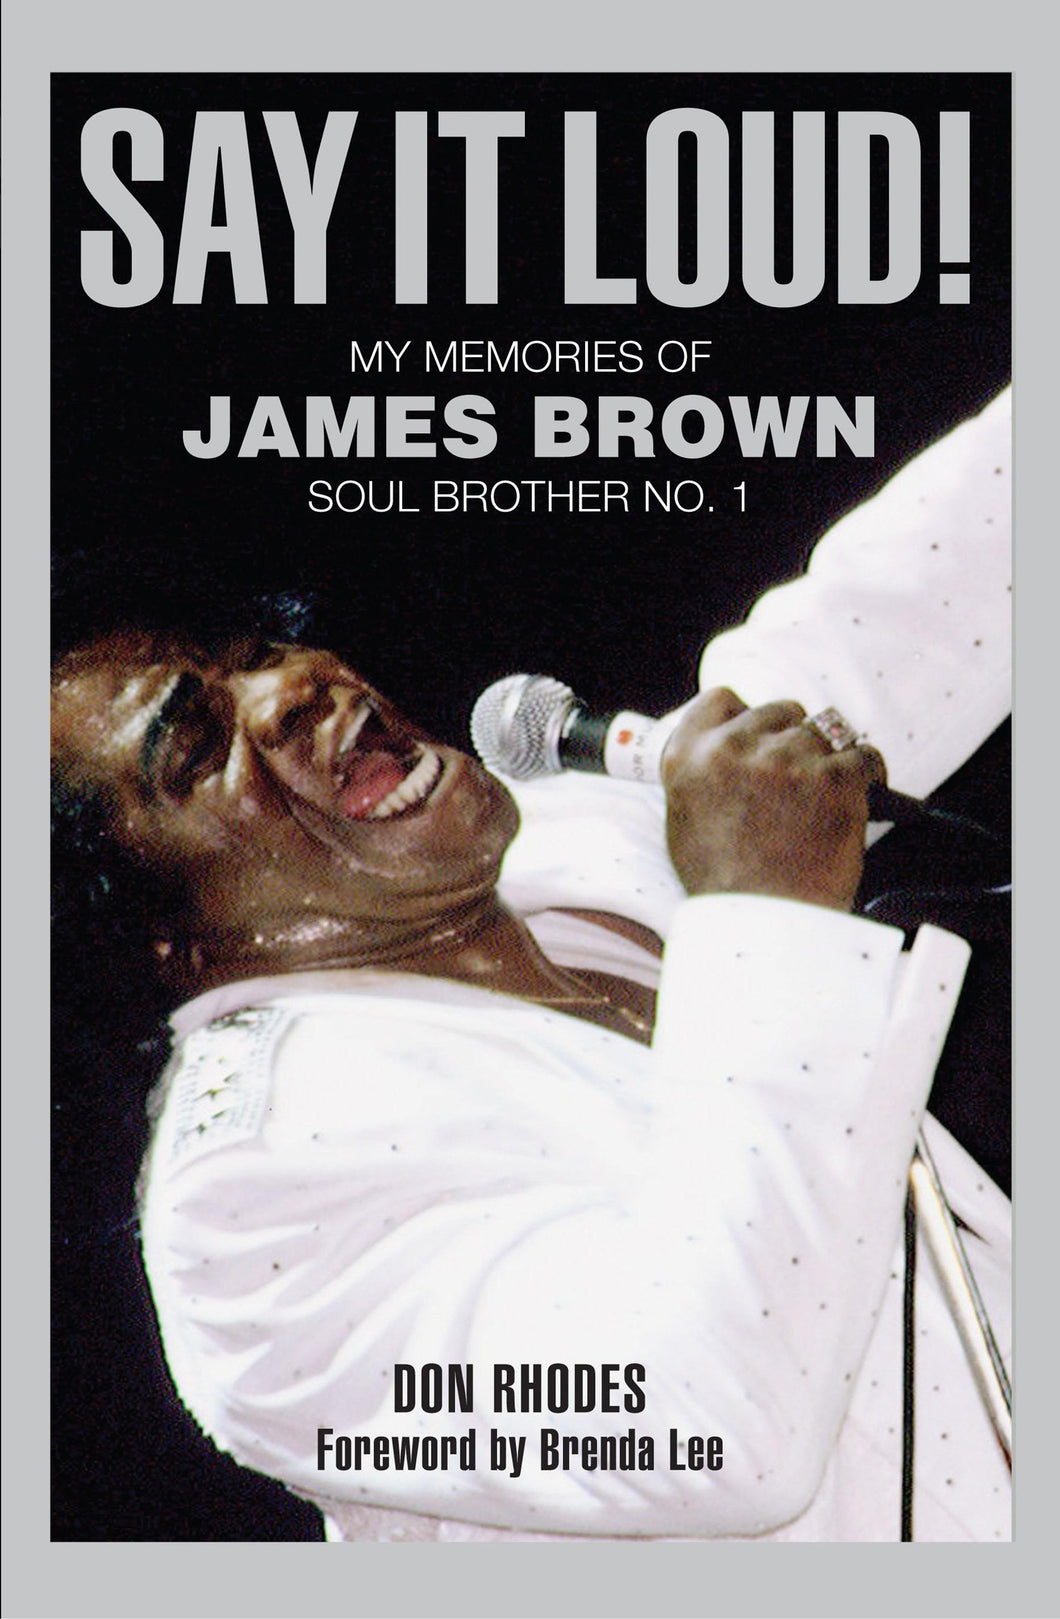 Say It Loud!: My Memories of James Brown, Soul Brother No. 1 by Don Rhodes [Hardback]